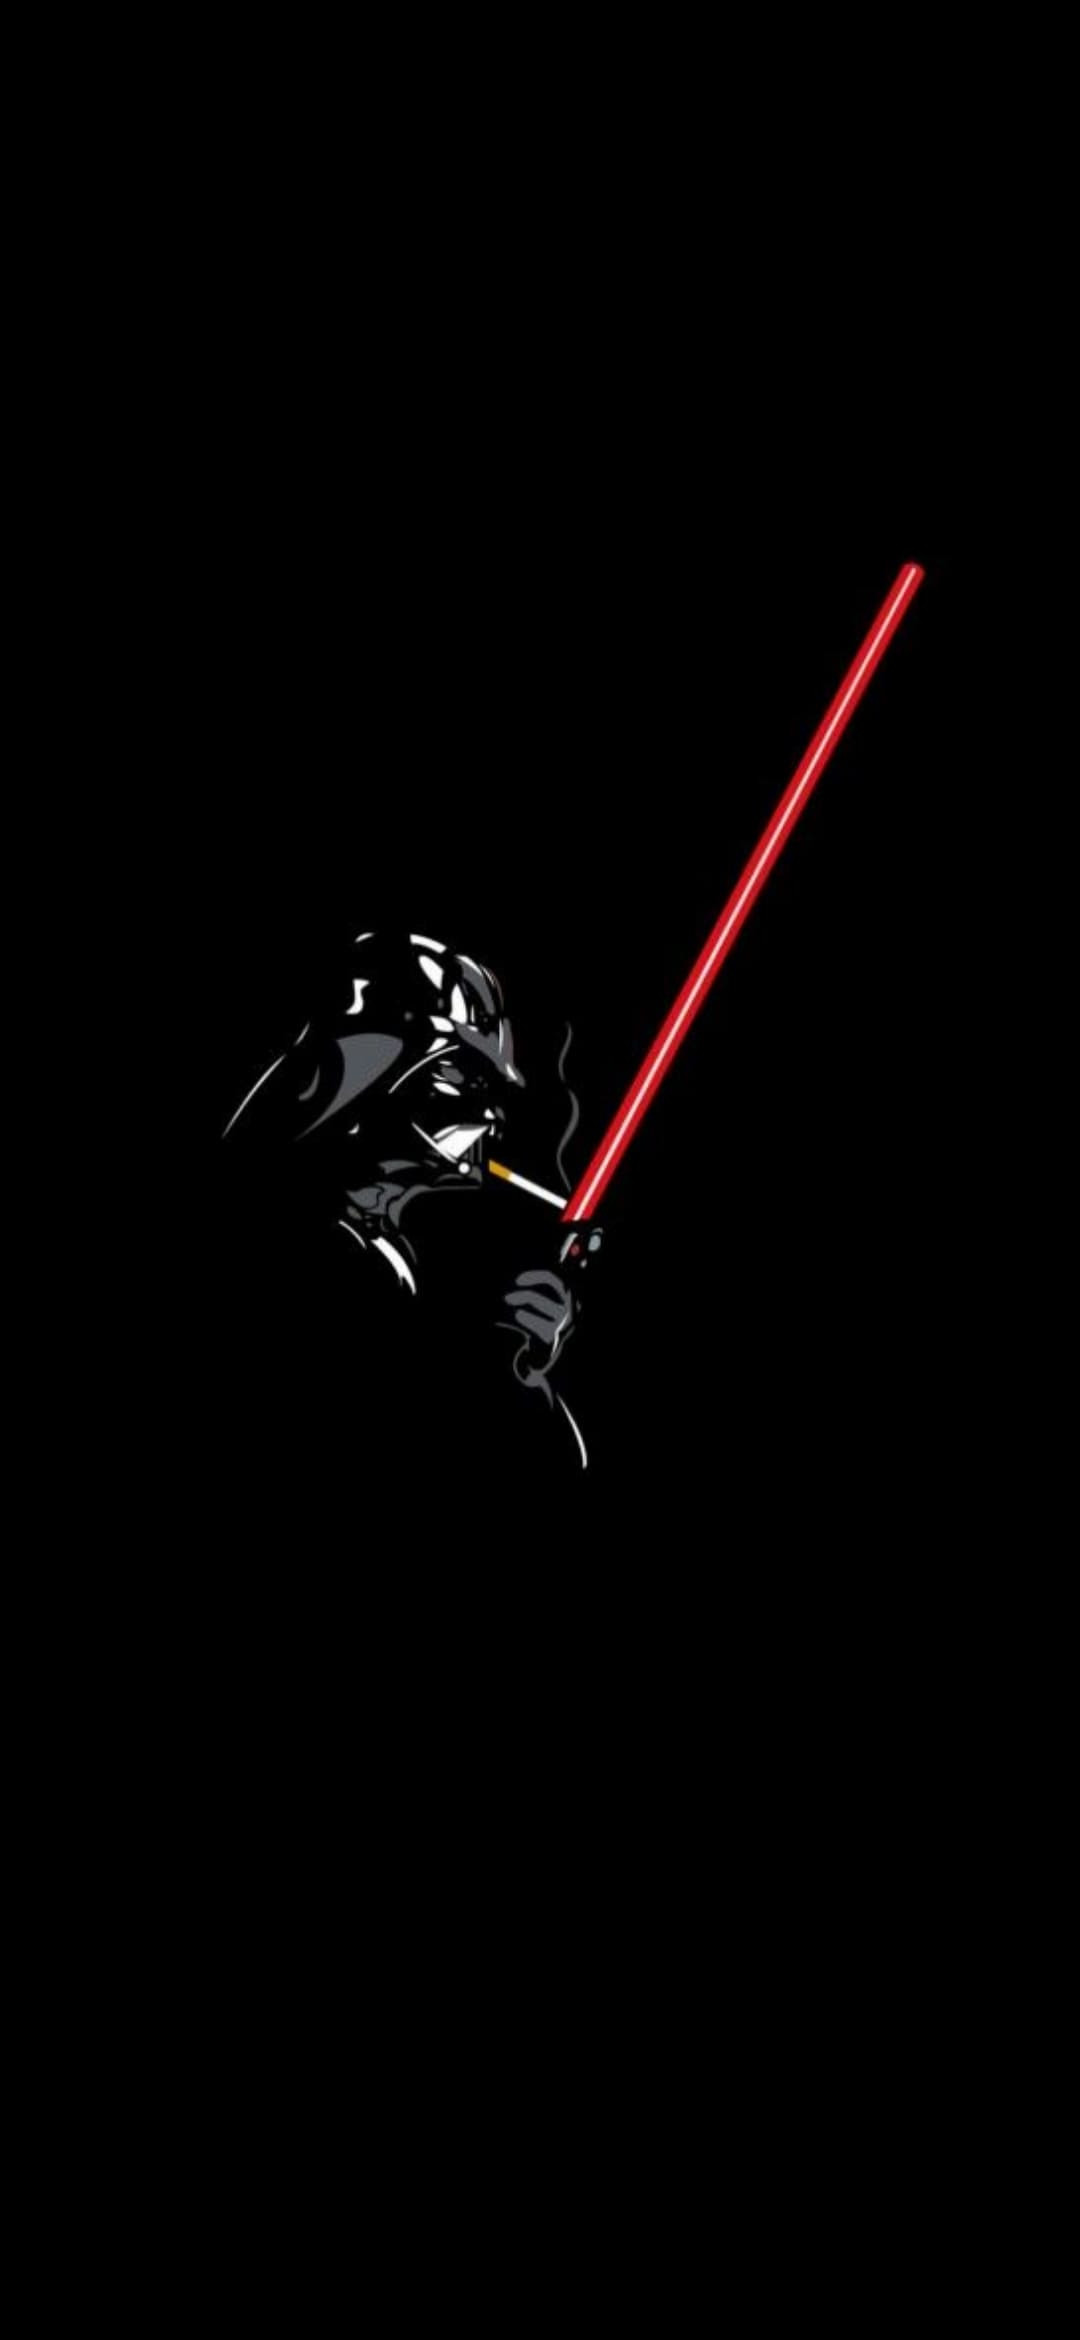 Darth Vader Wallpaper For iPhone